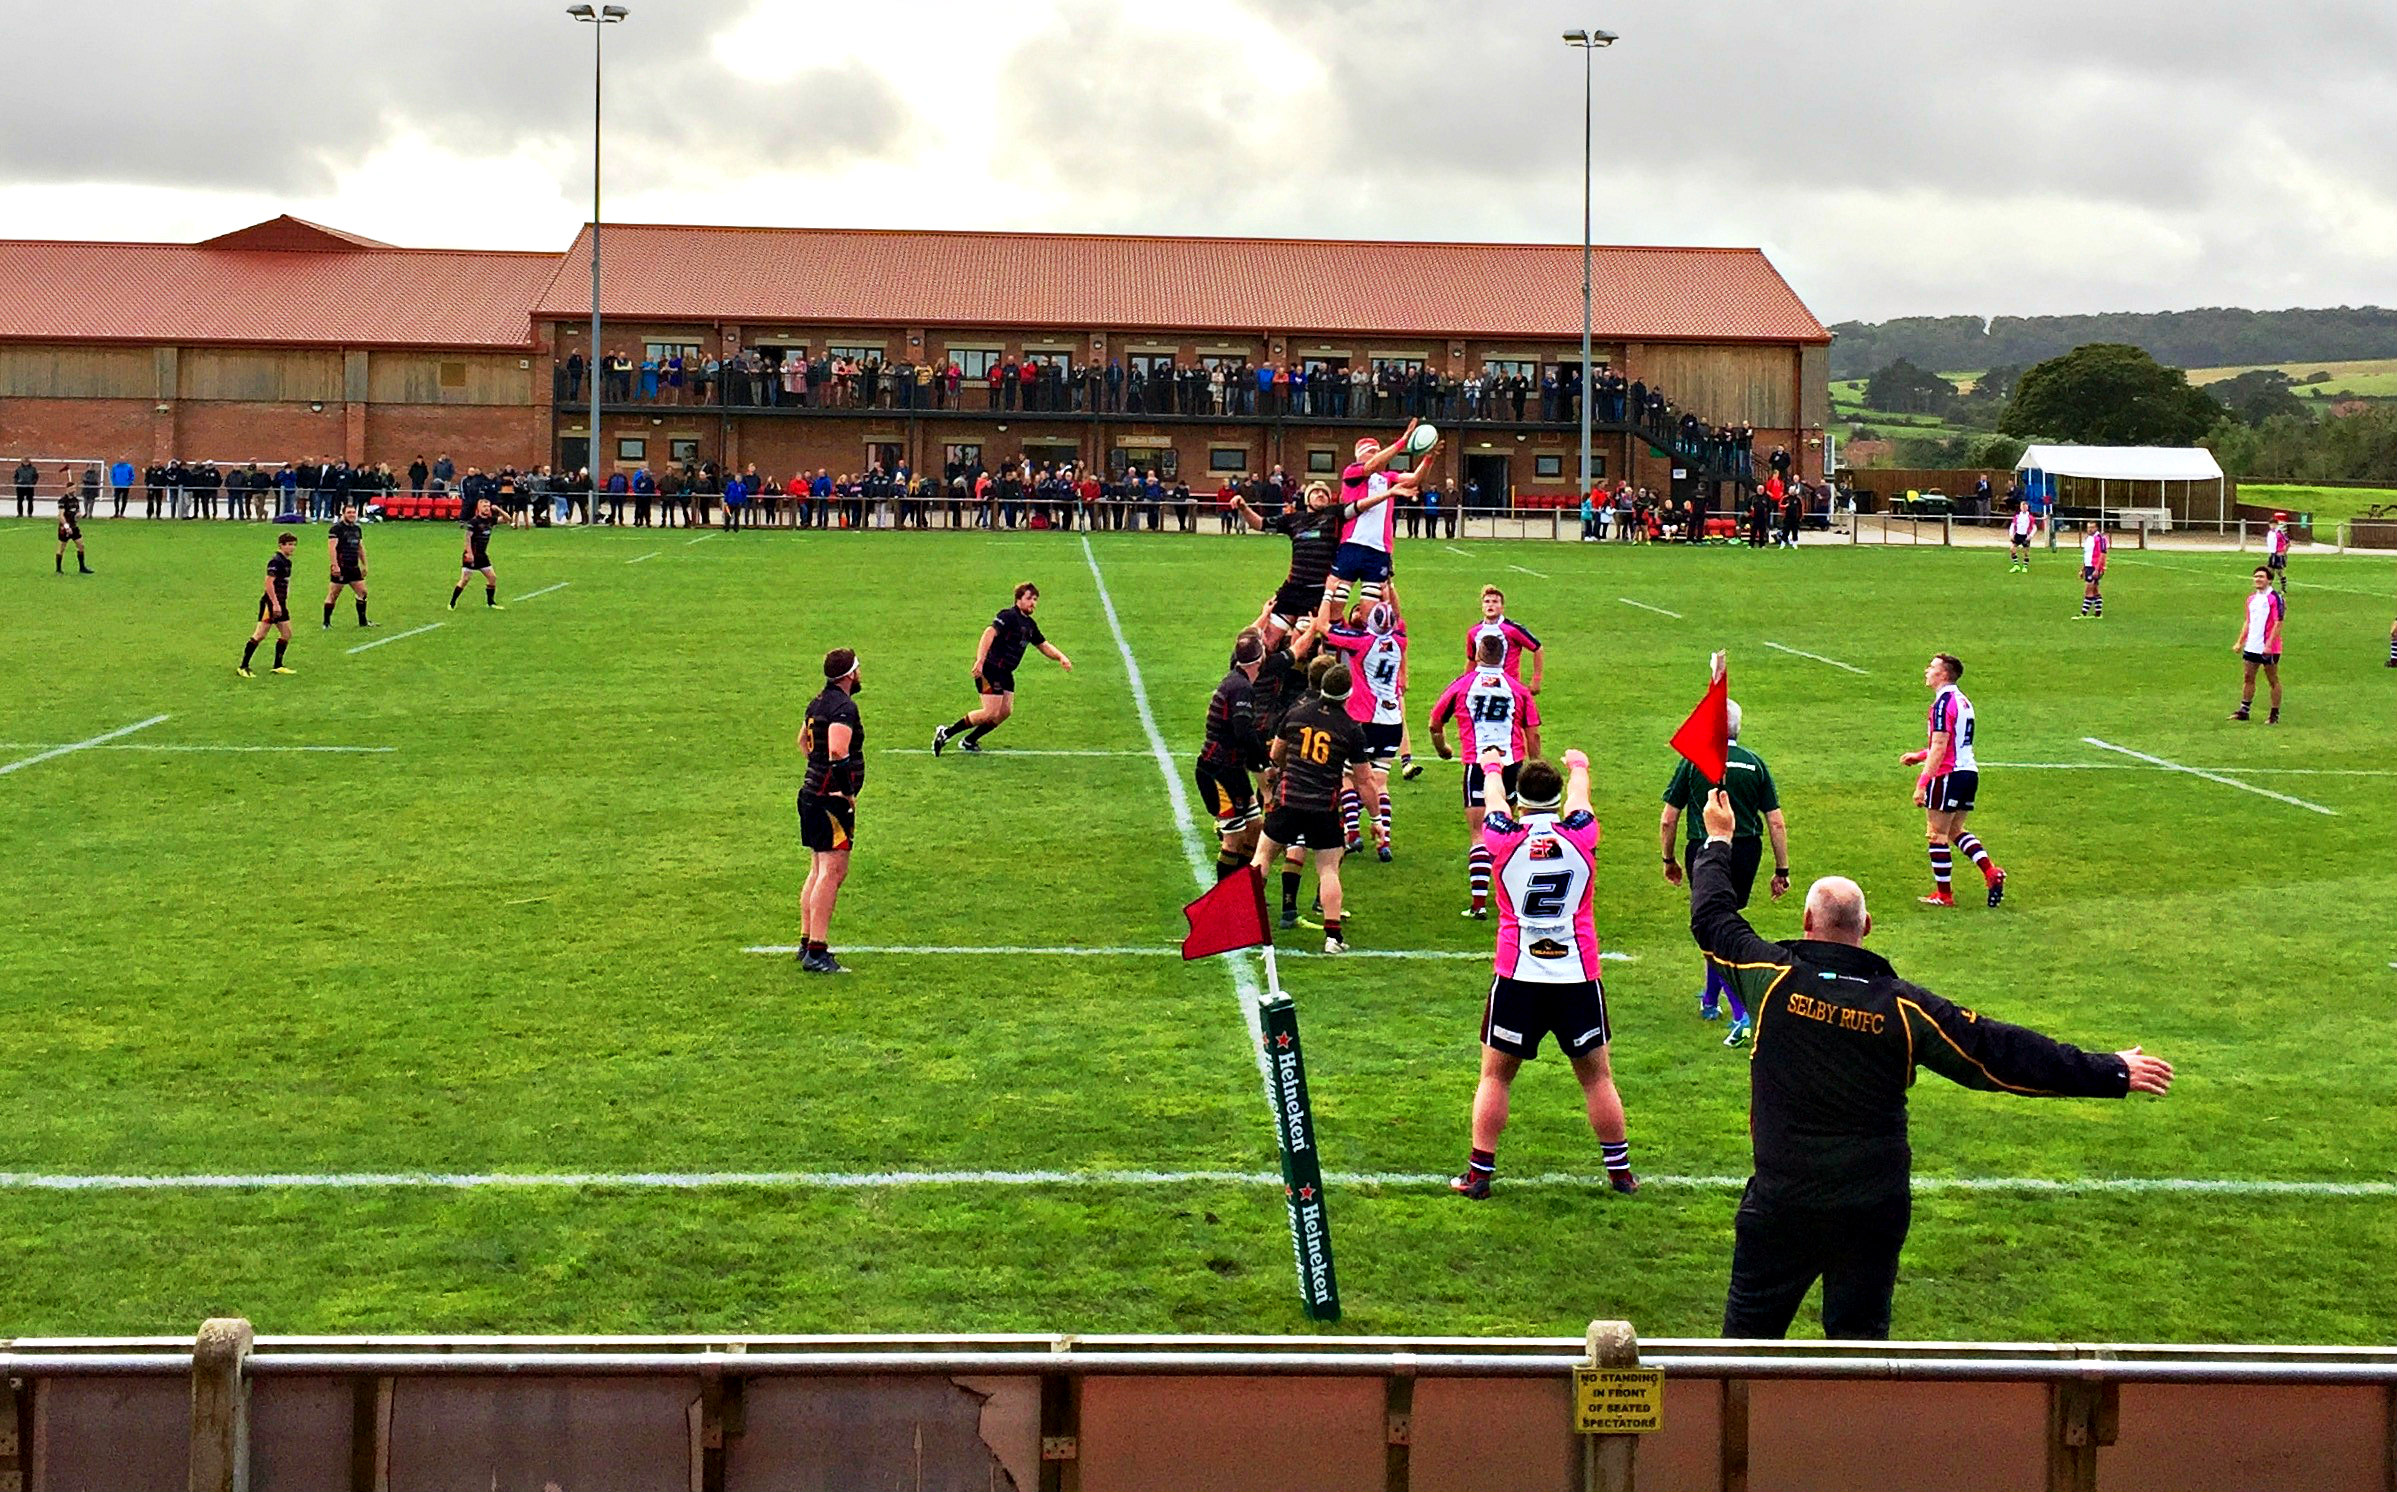 2017-09-16 BORO-SELBY LINEOUT SHARP